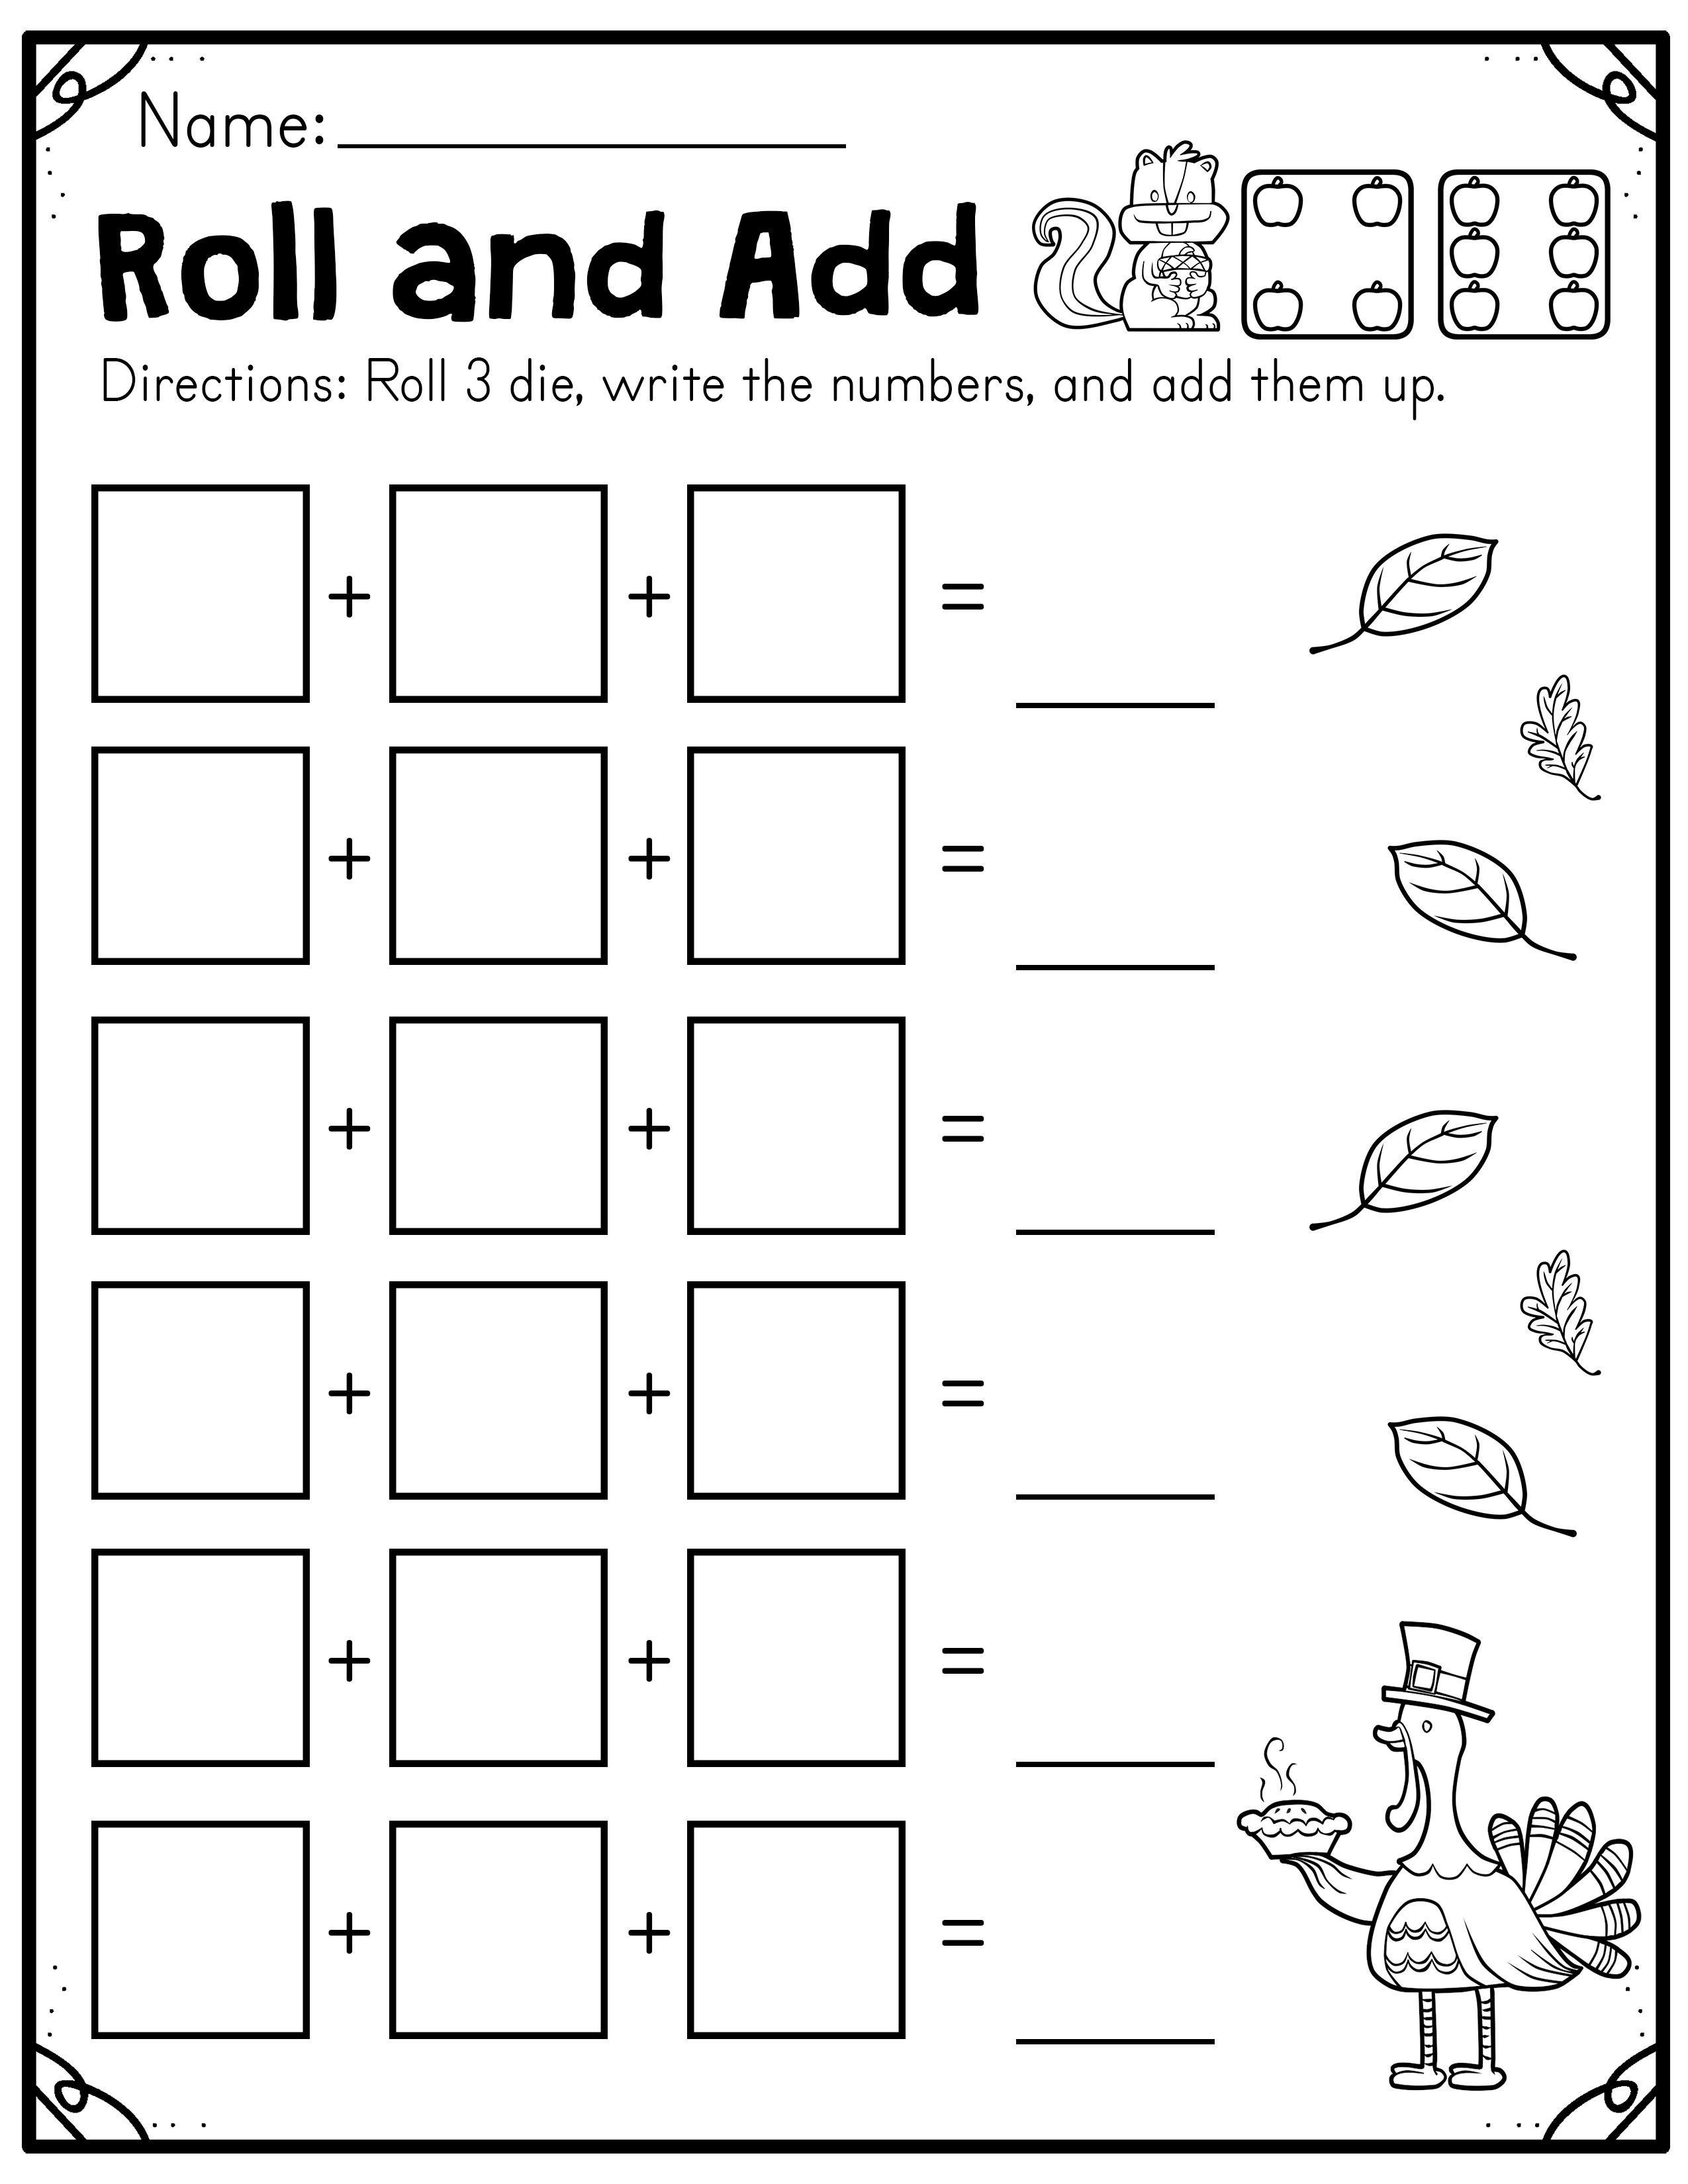 Categorizing Worksheets for 1st Grade First Grade Word sort Worksheet